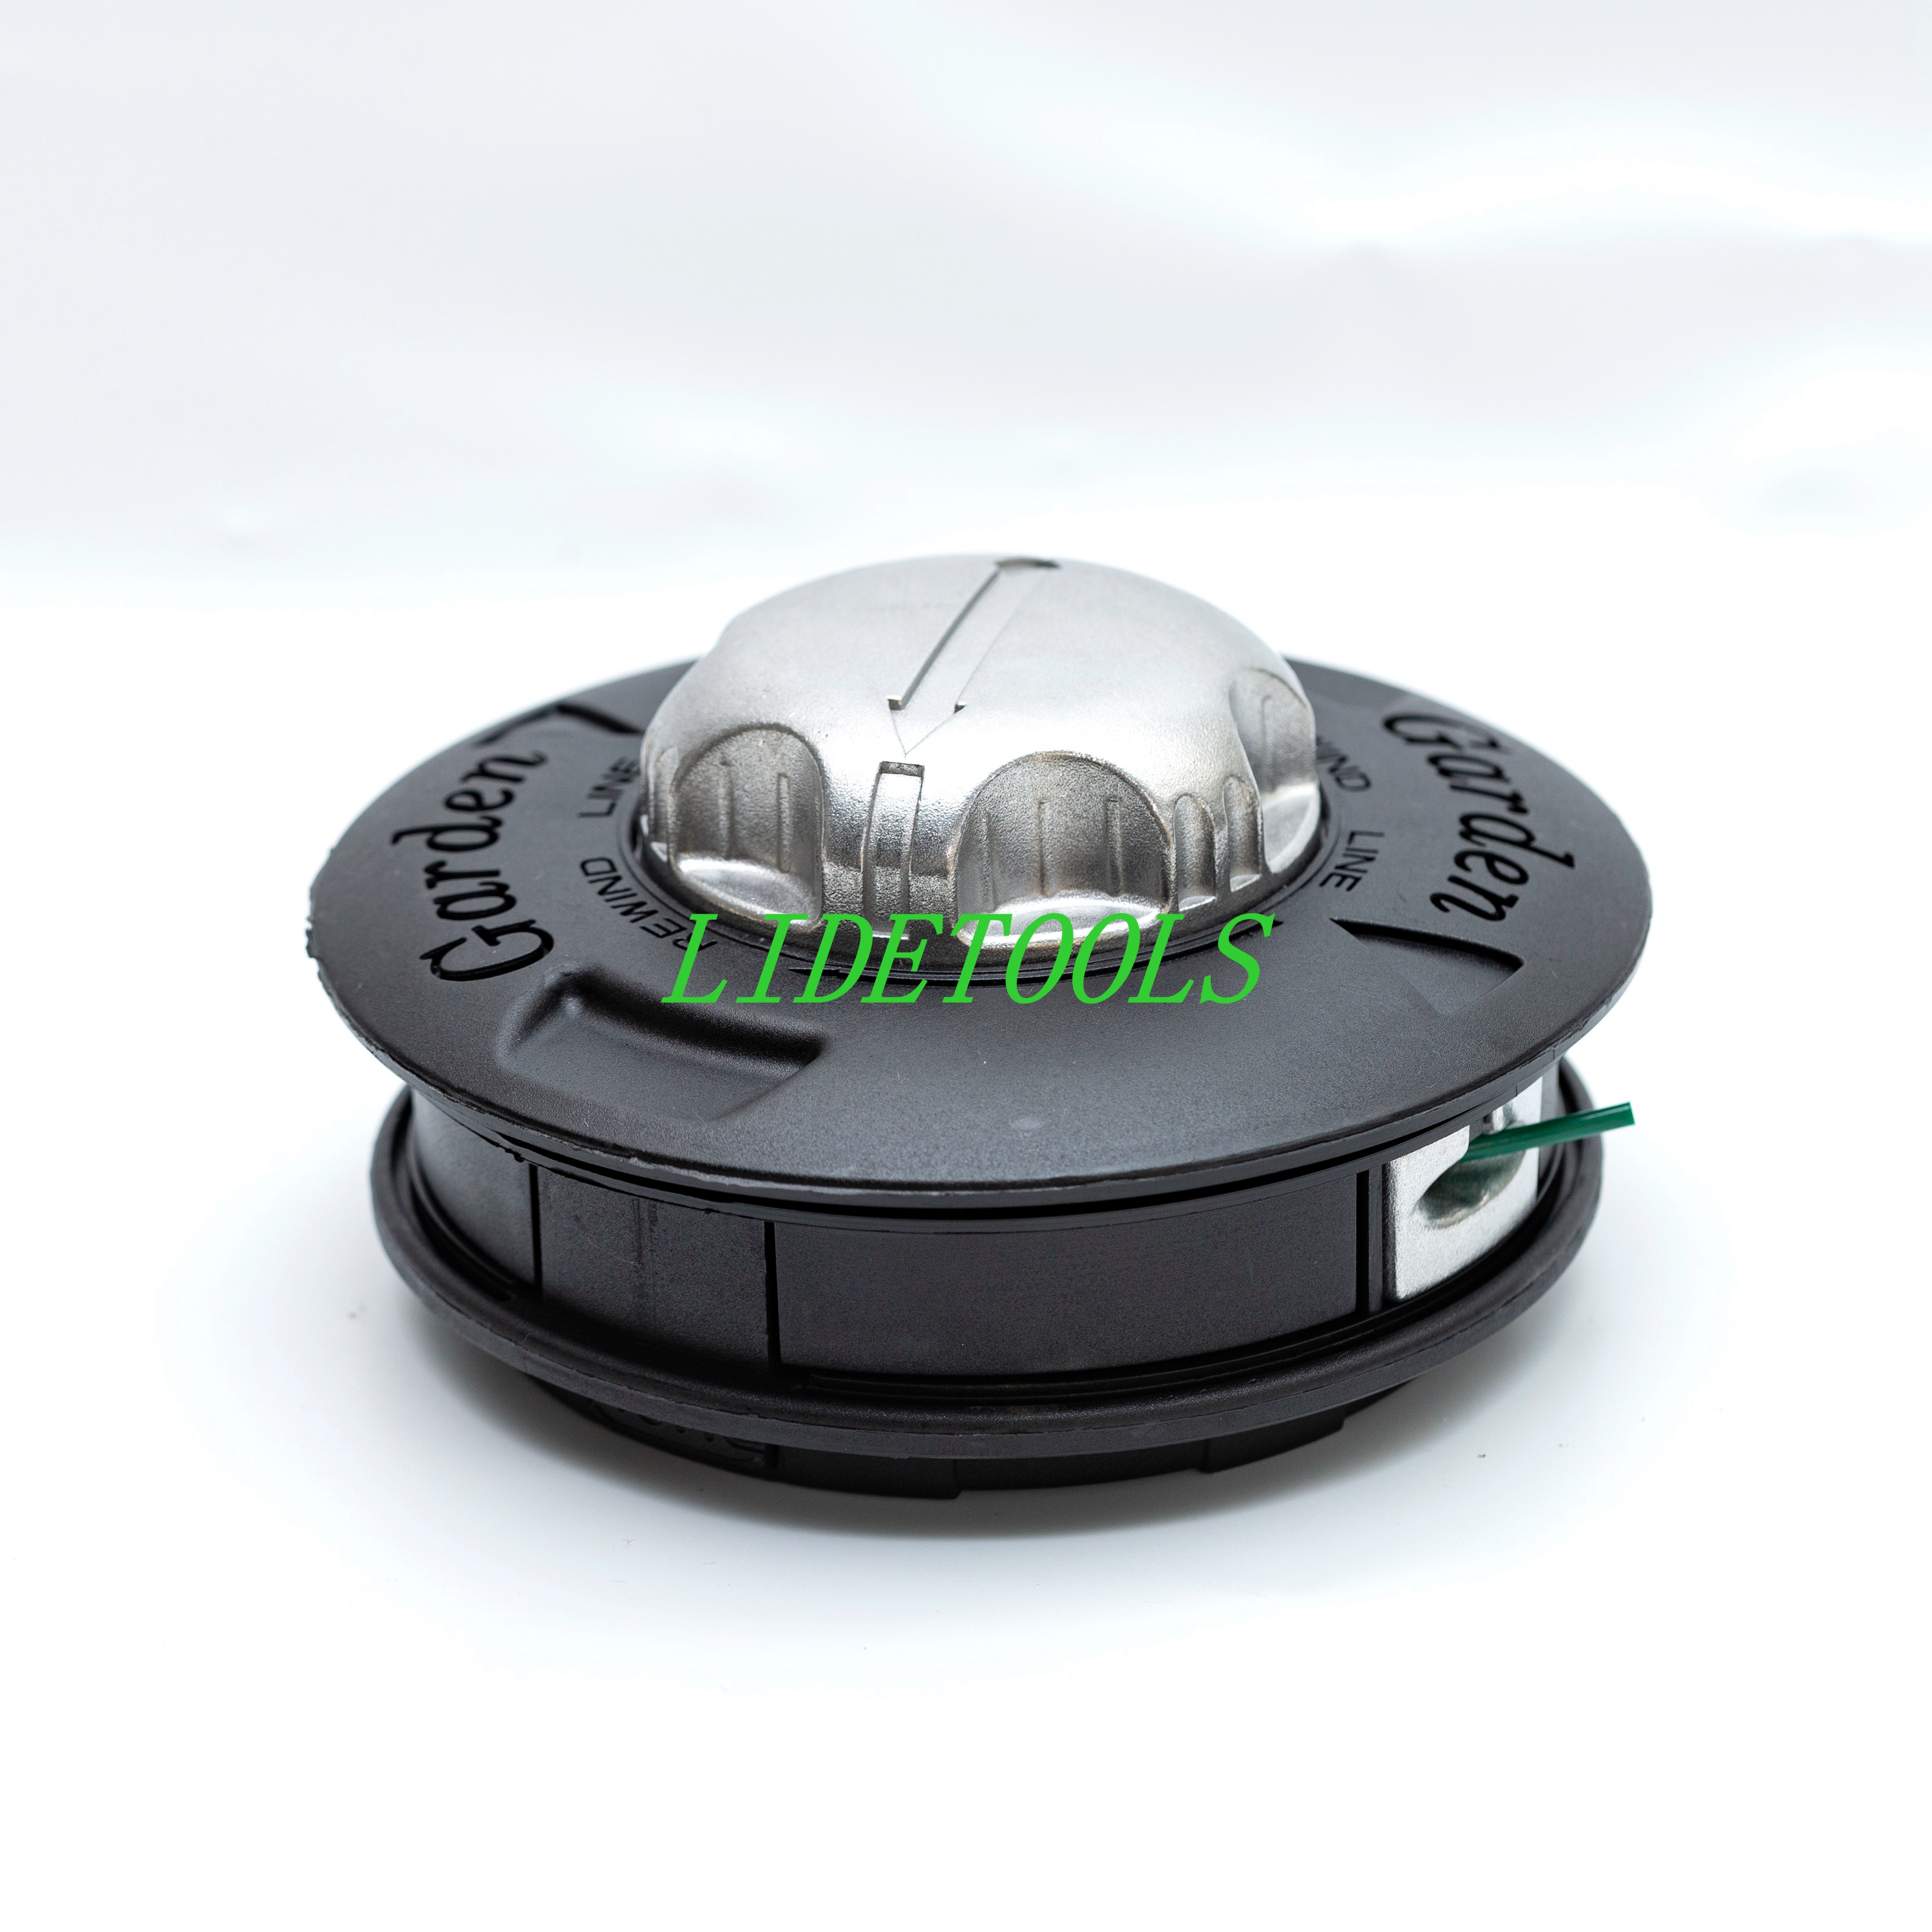 New Model Aluminum Trimmer Head Bump Feed Trimmer Head For Grass Trimmer,brush Cutter ,lawn Mower,replacement Parts